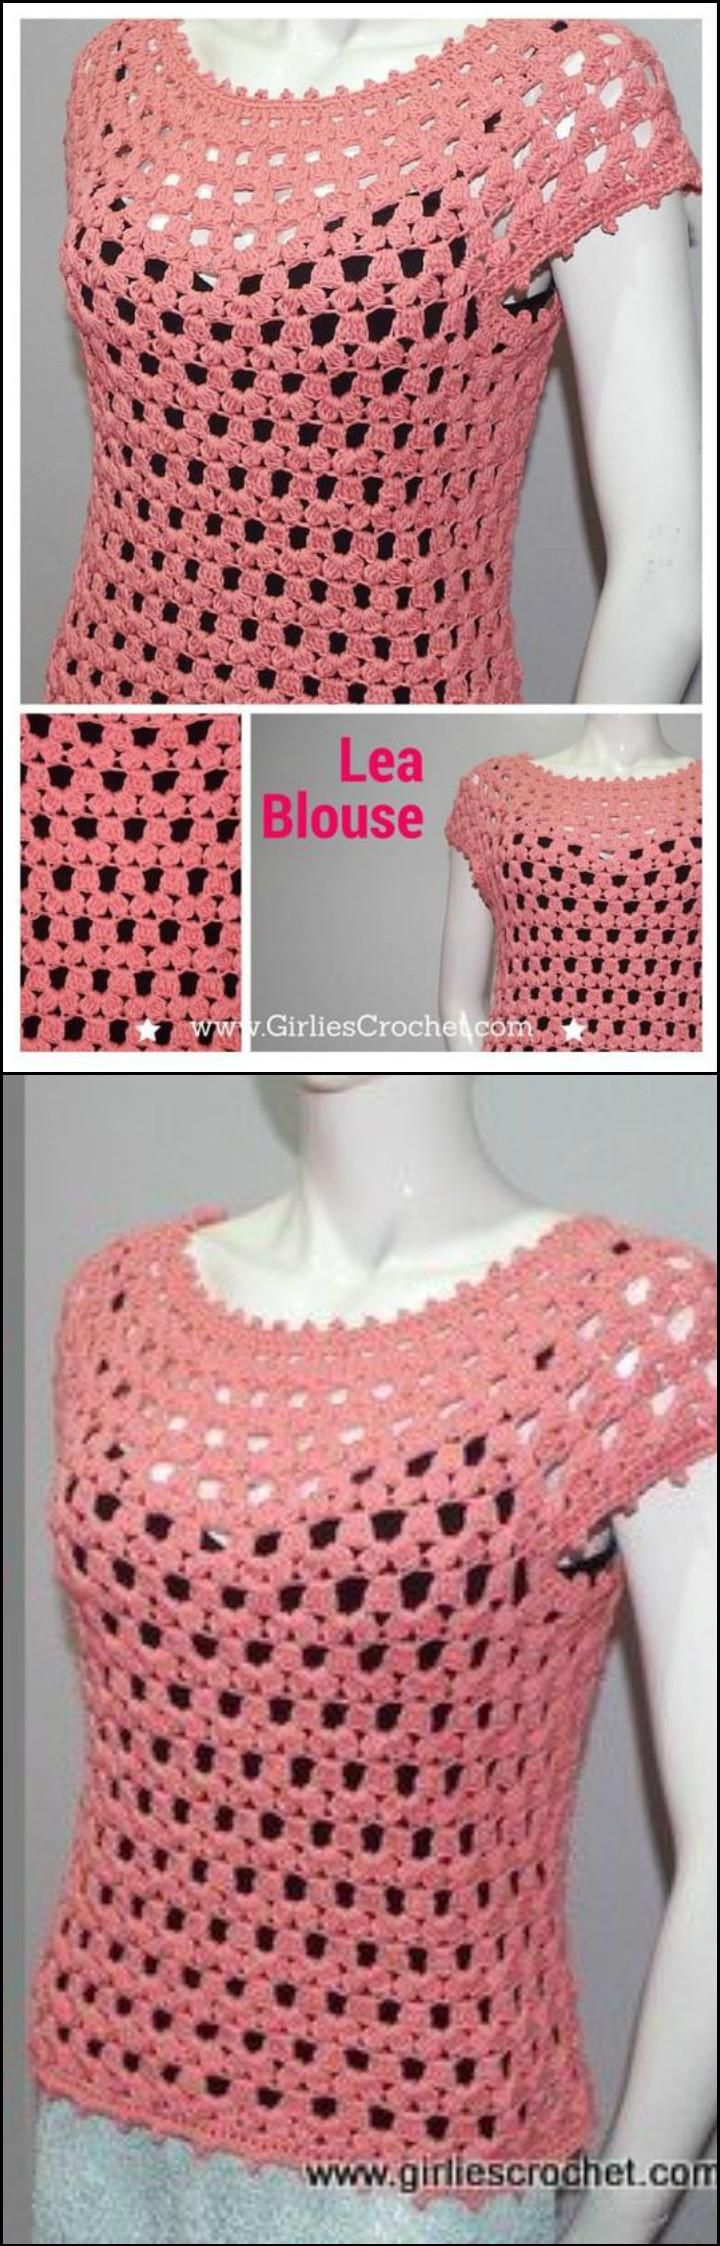 50+ Quick & Easy Crochet Summer Tops - Free Patterns - Page 7 of 9 - DIY & Crafts